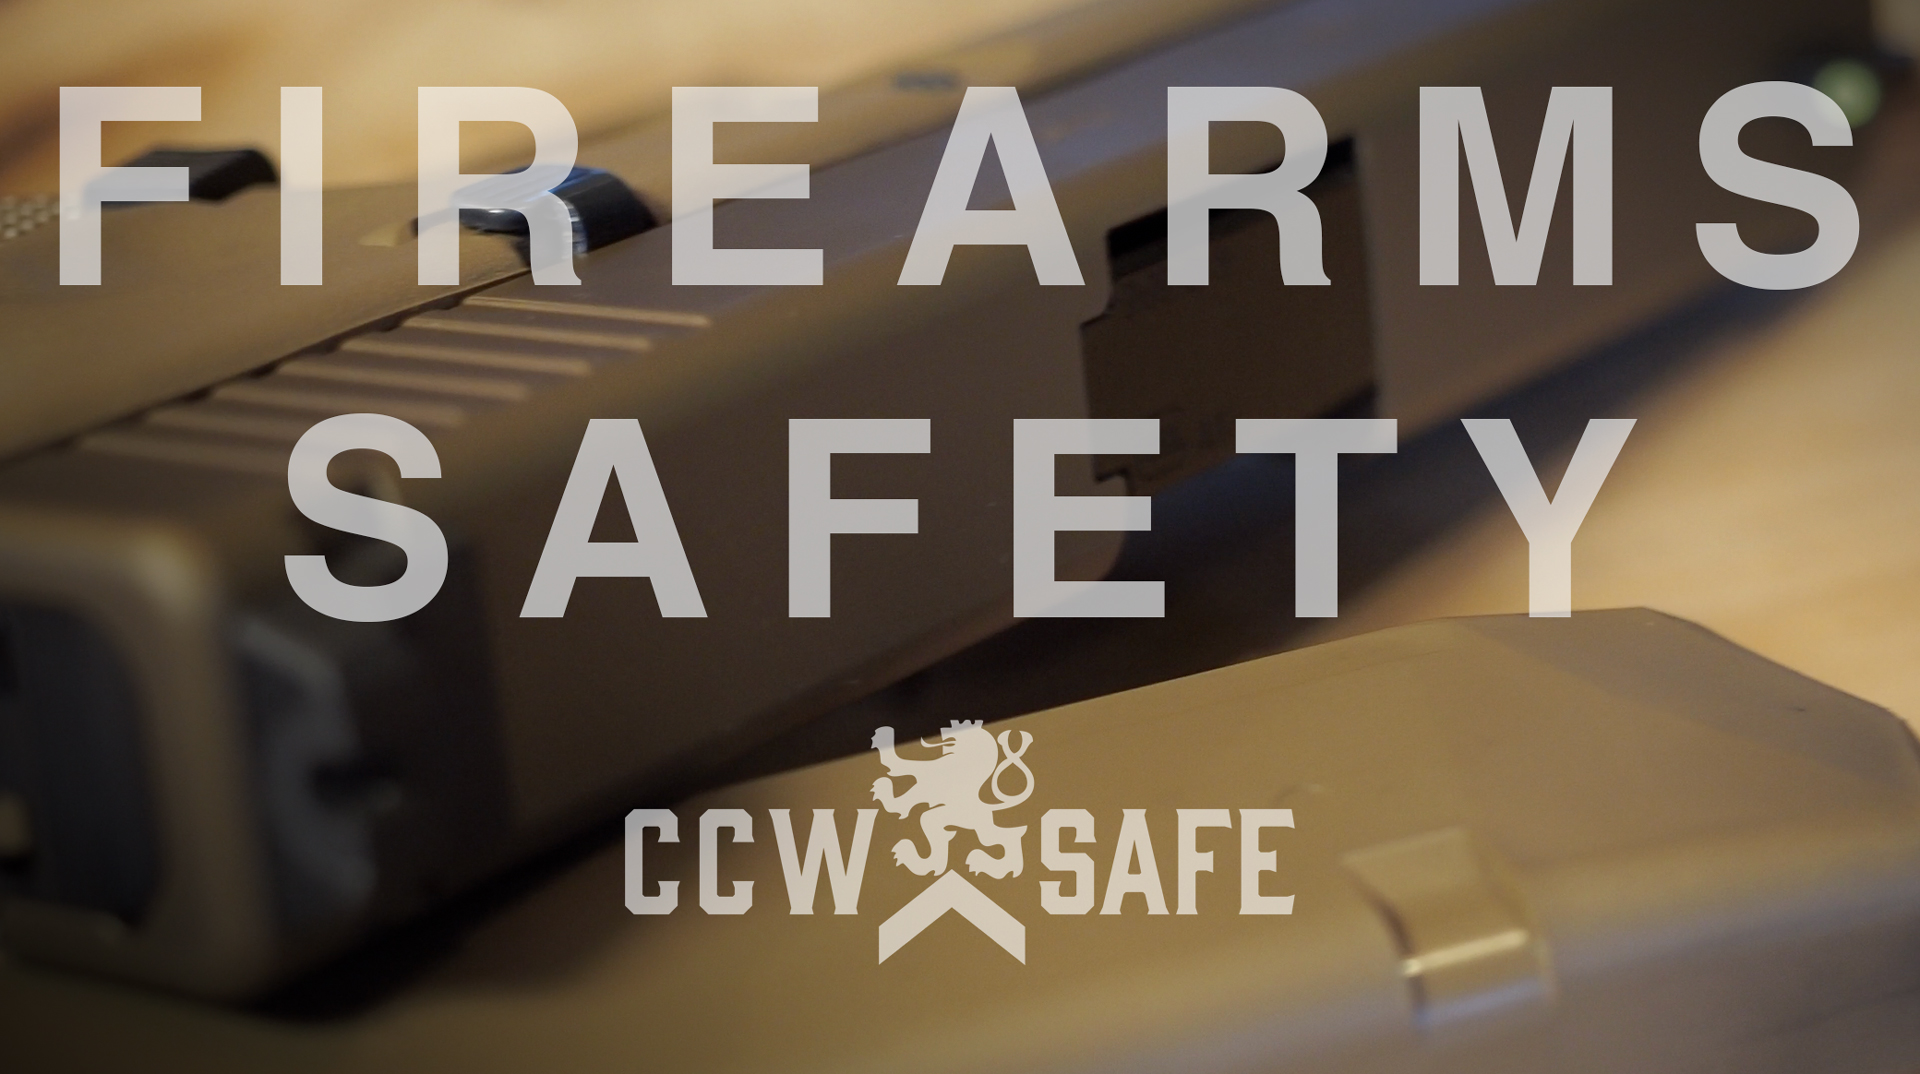 Larry Vickers on Firearm Safety